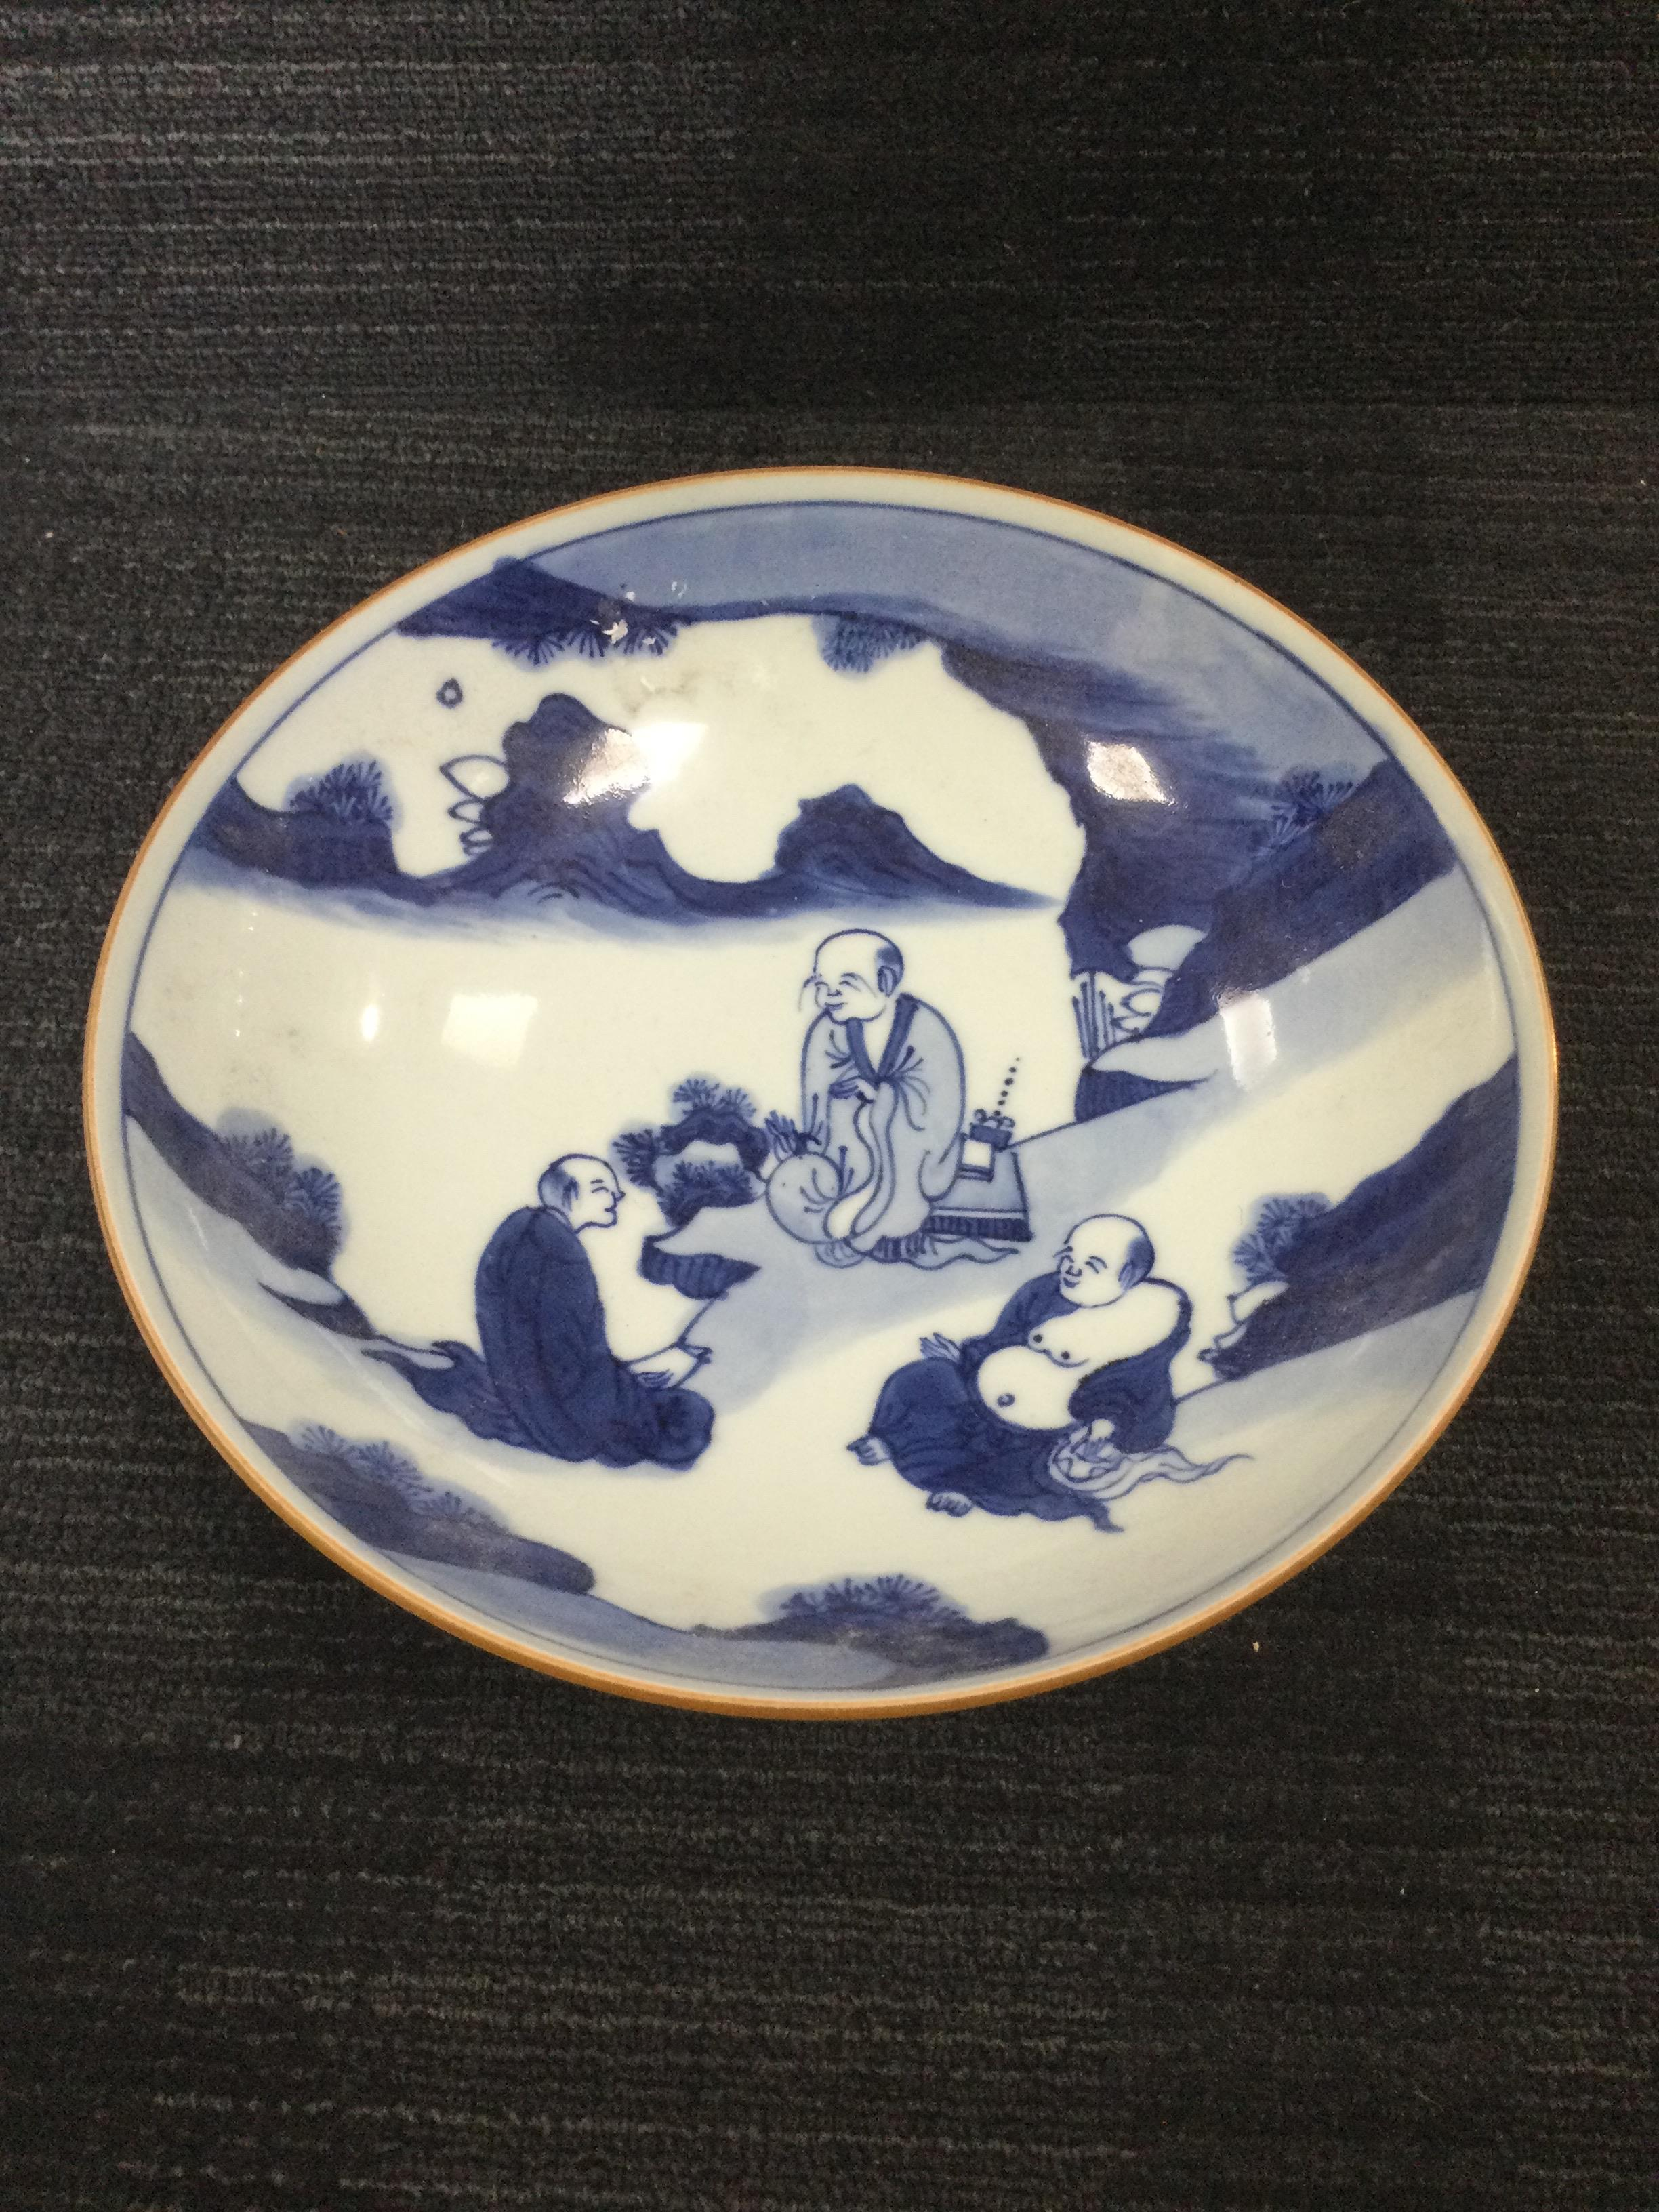 A 20TH CENTURY CHINESE BLUE AND WHITE BOWL - Image 2 of 3